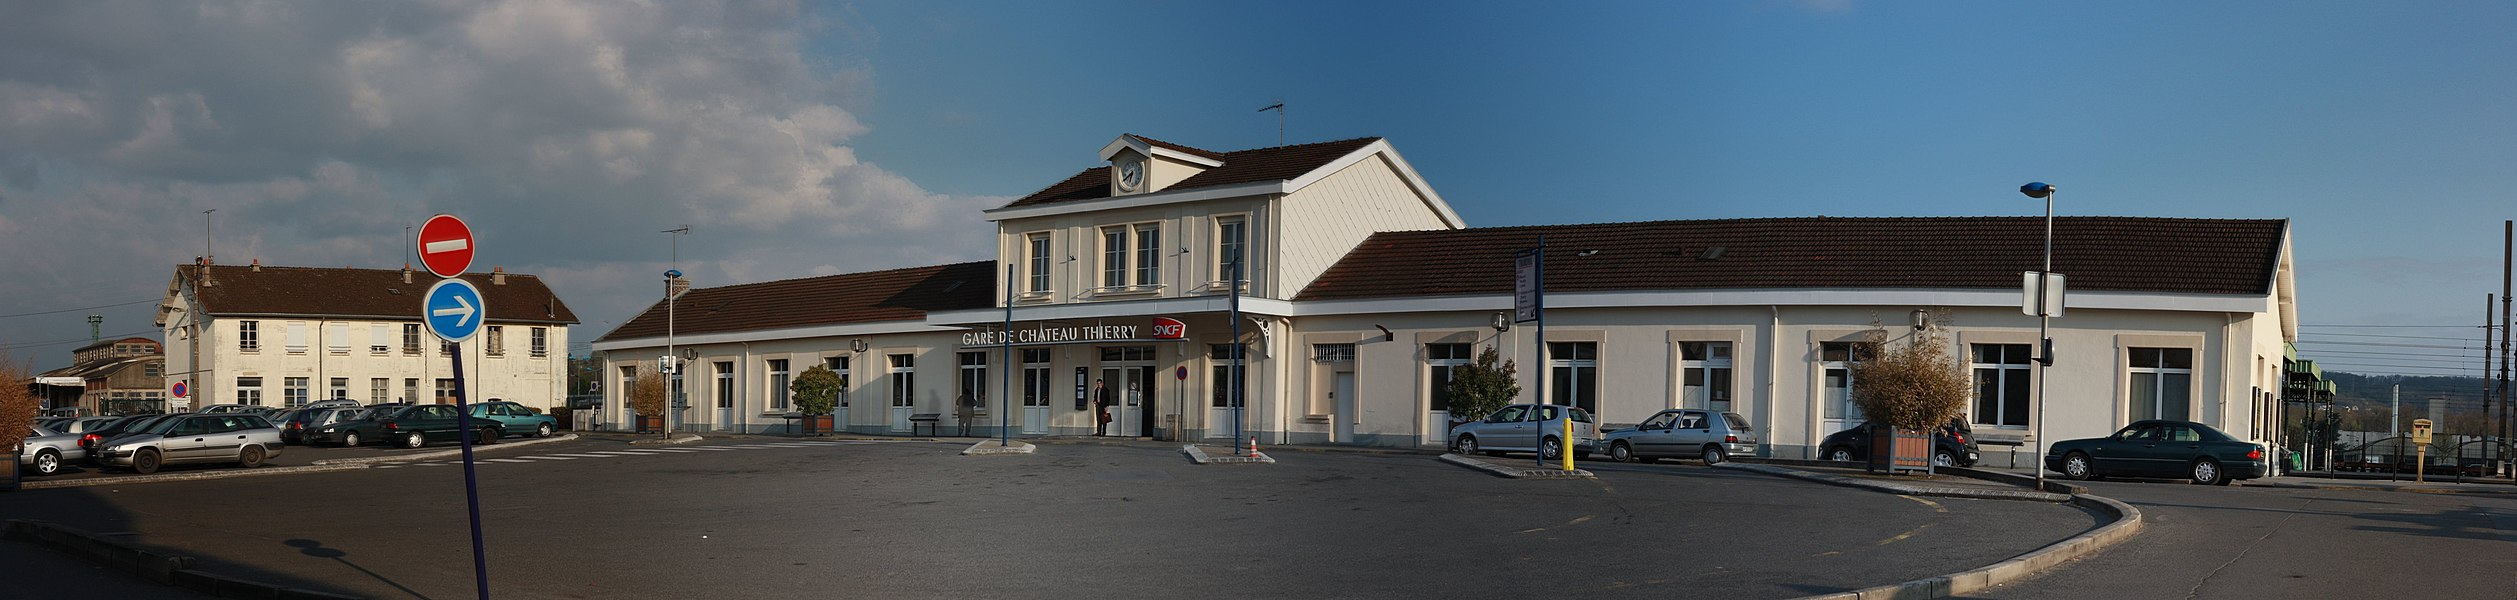 Panoramic view of Château-Thierry Train Station